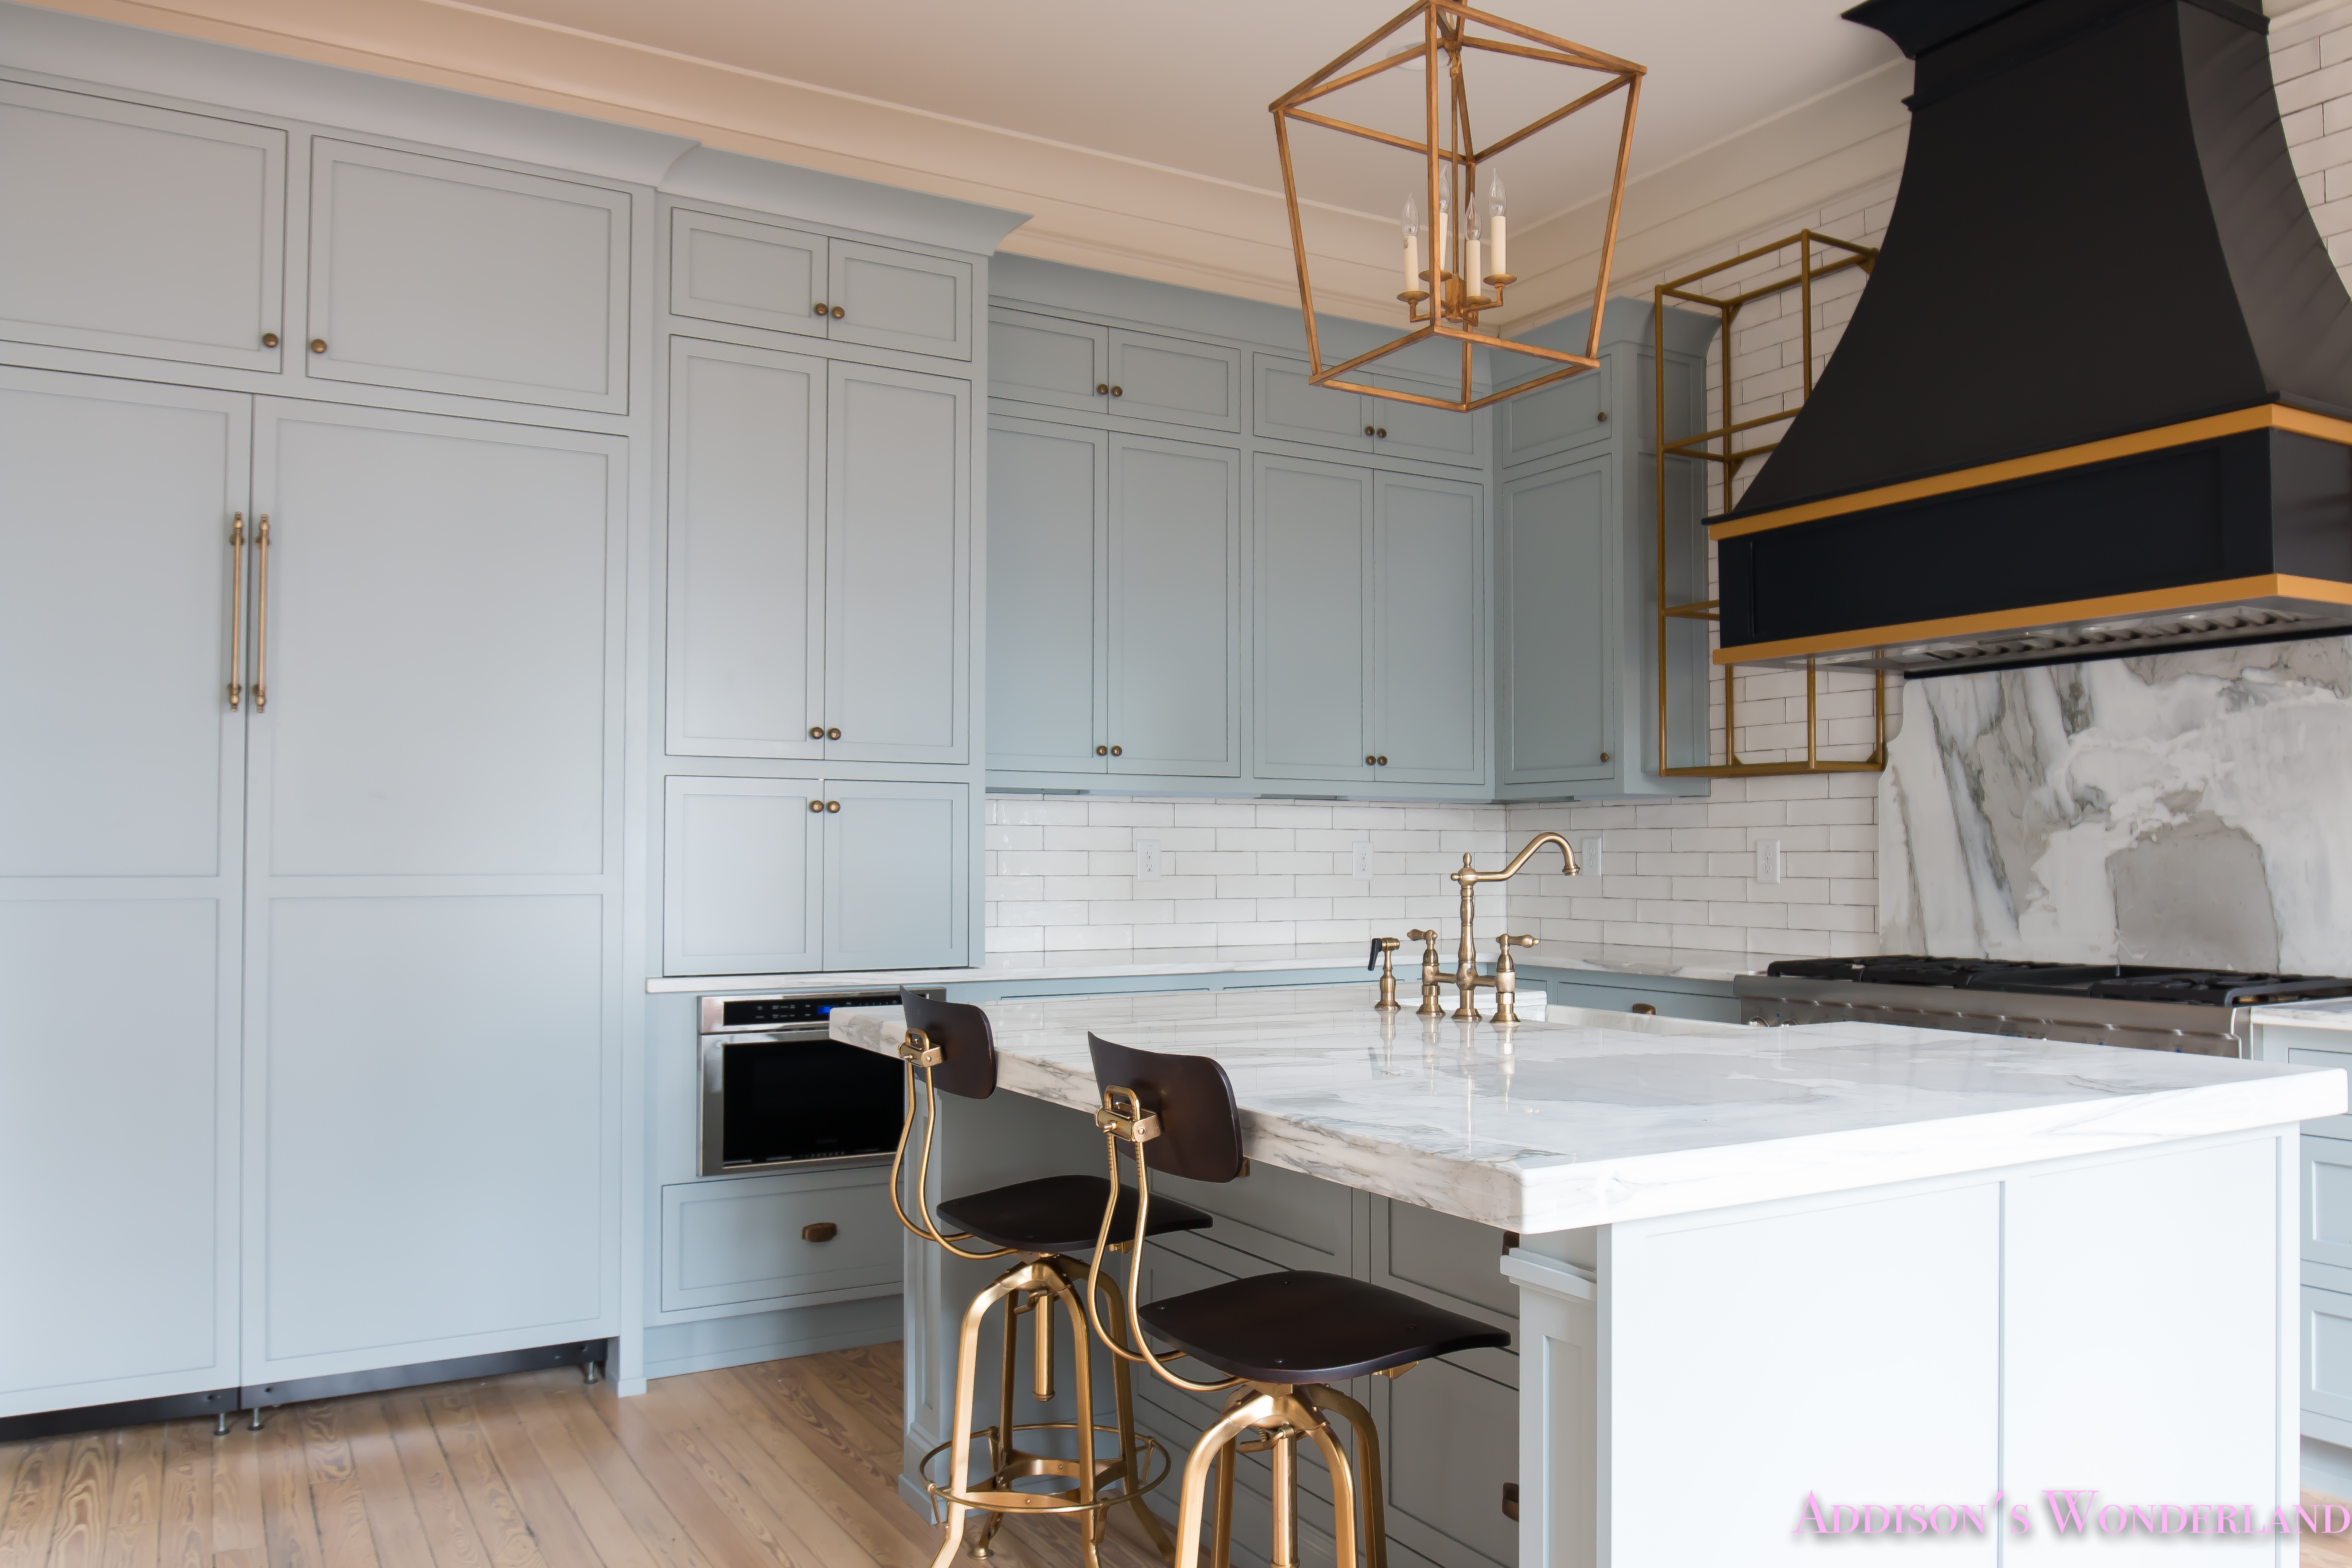 Classic vintage modern kitchen blue gray cabinets inset shaker ...